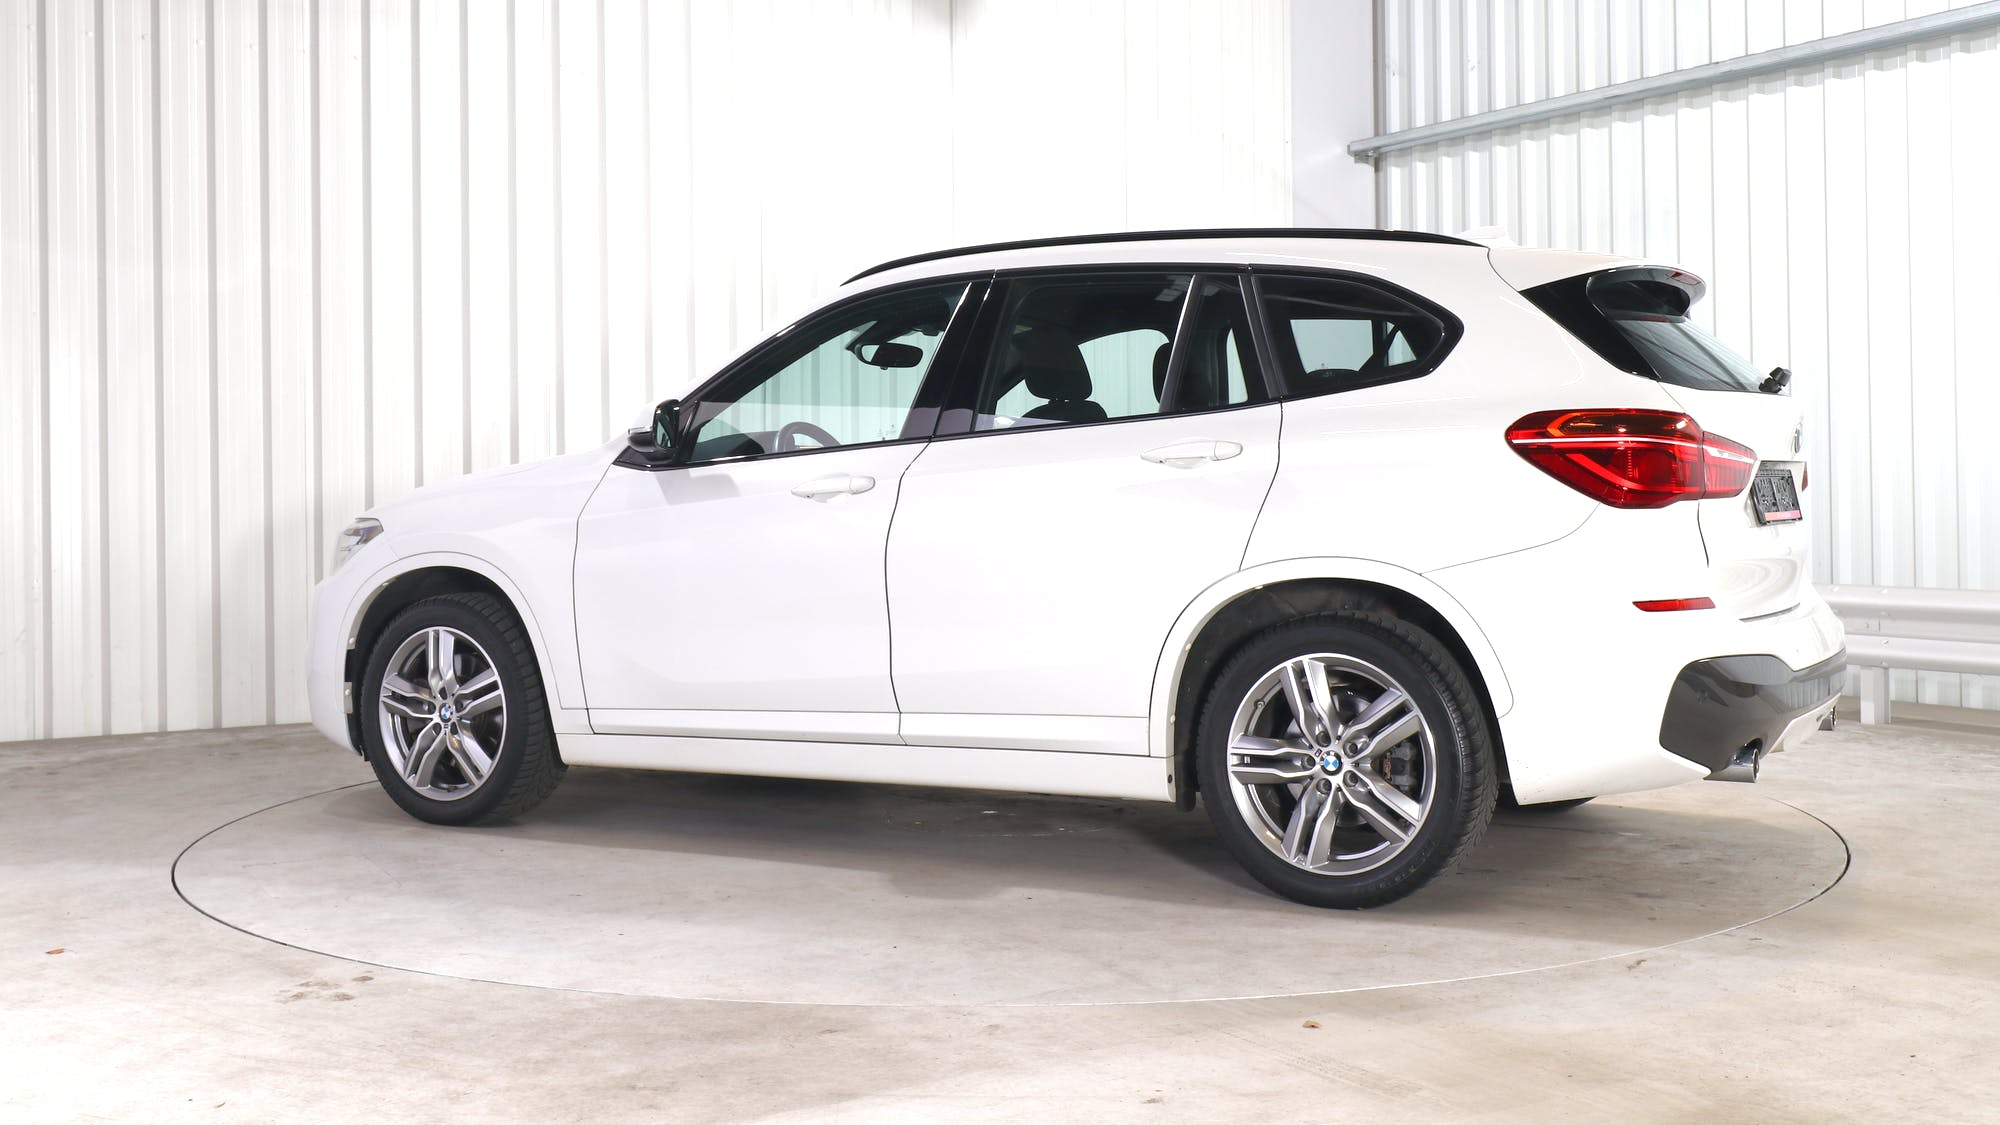 BMW X1 leasing exterior 3